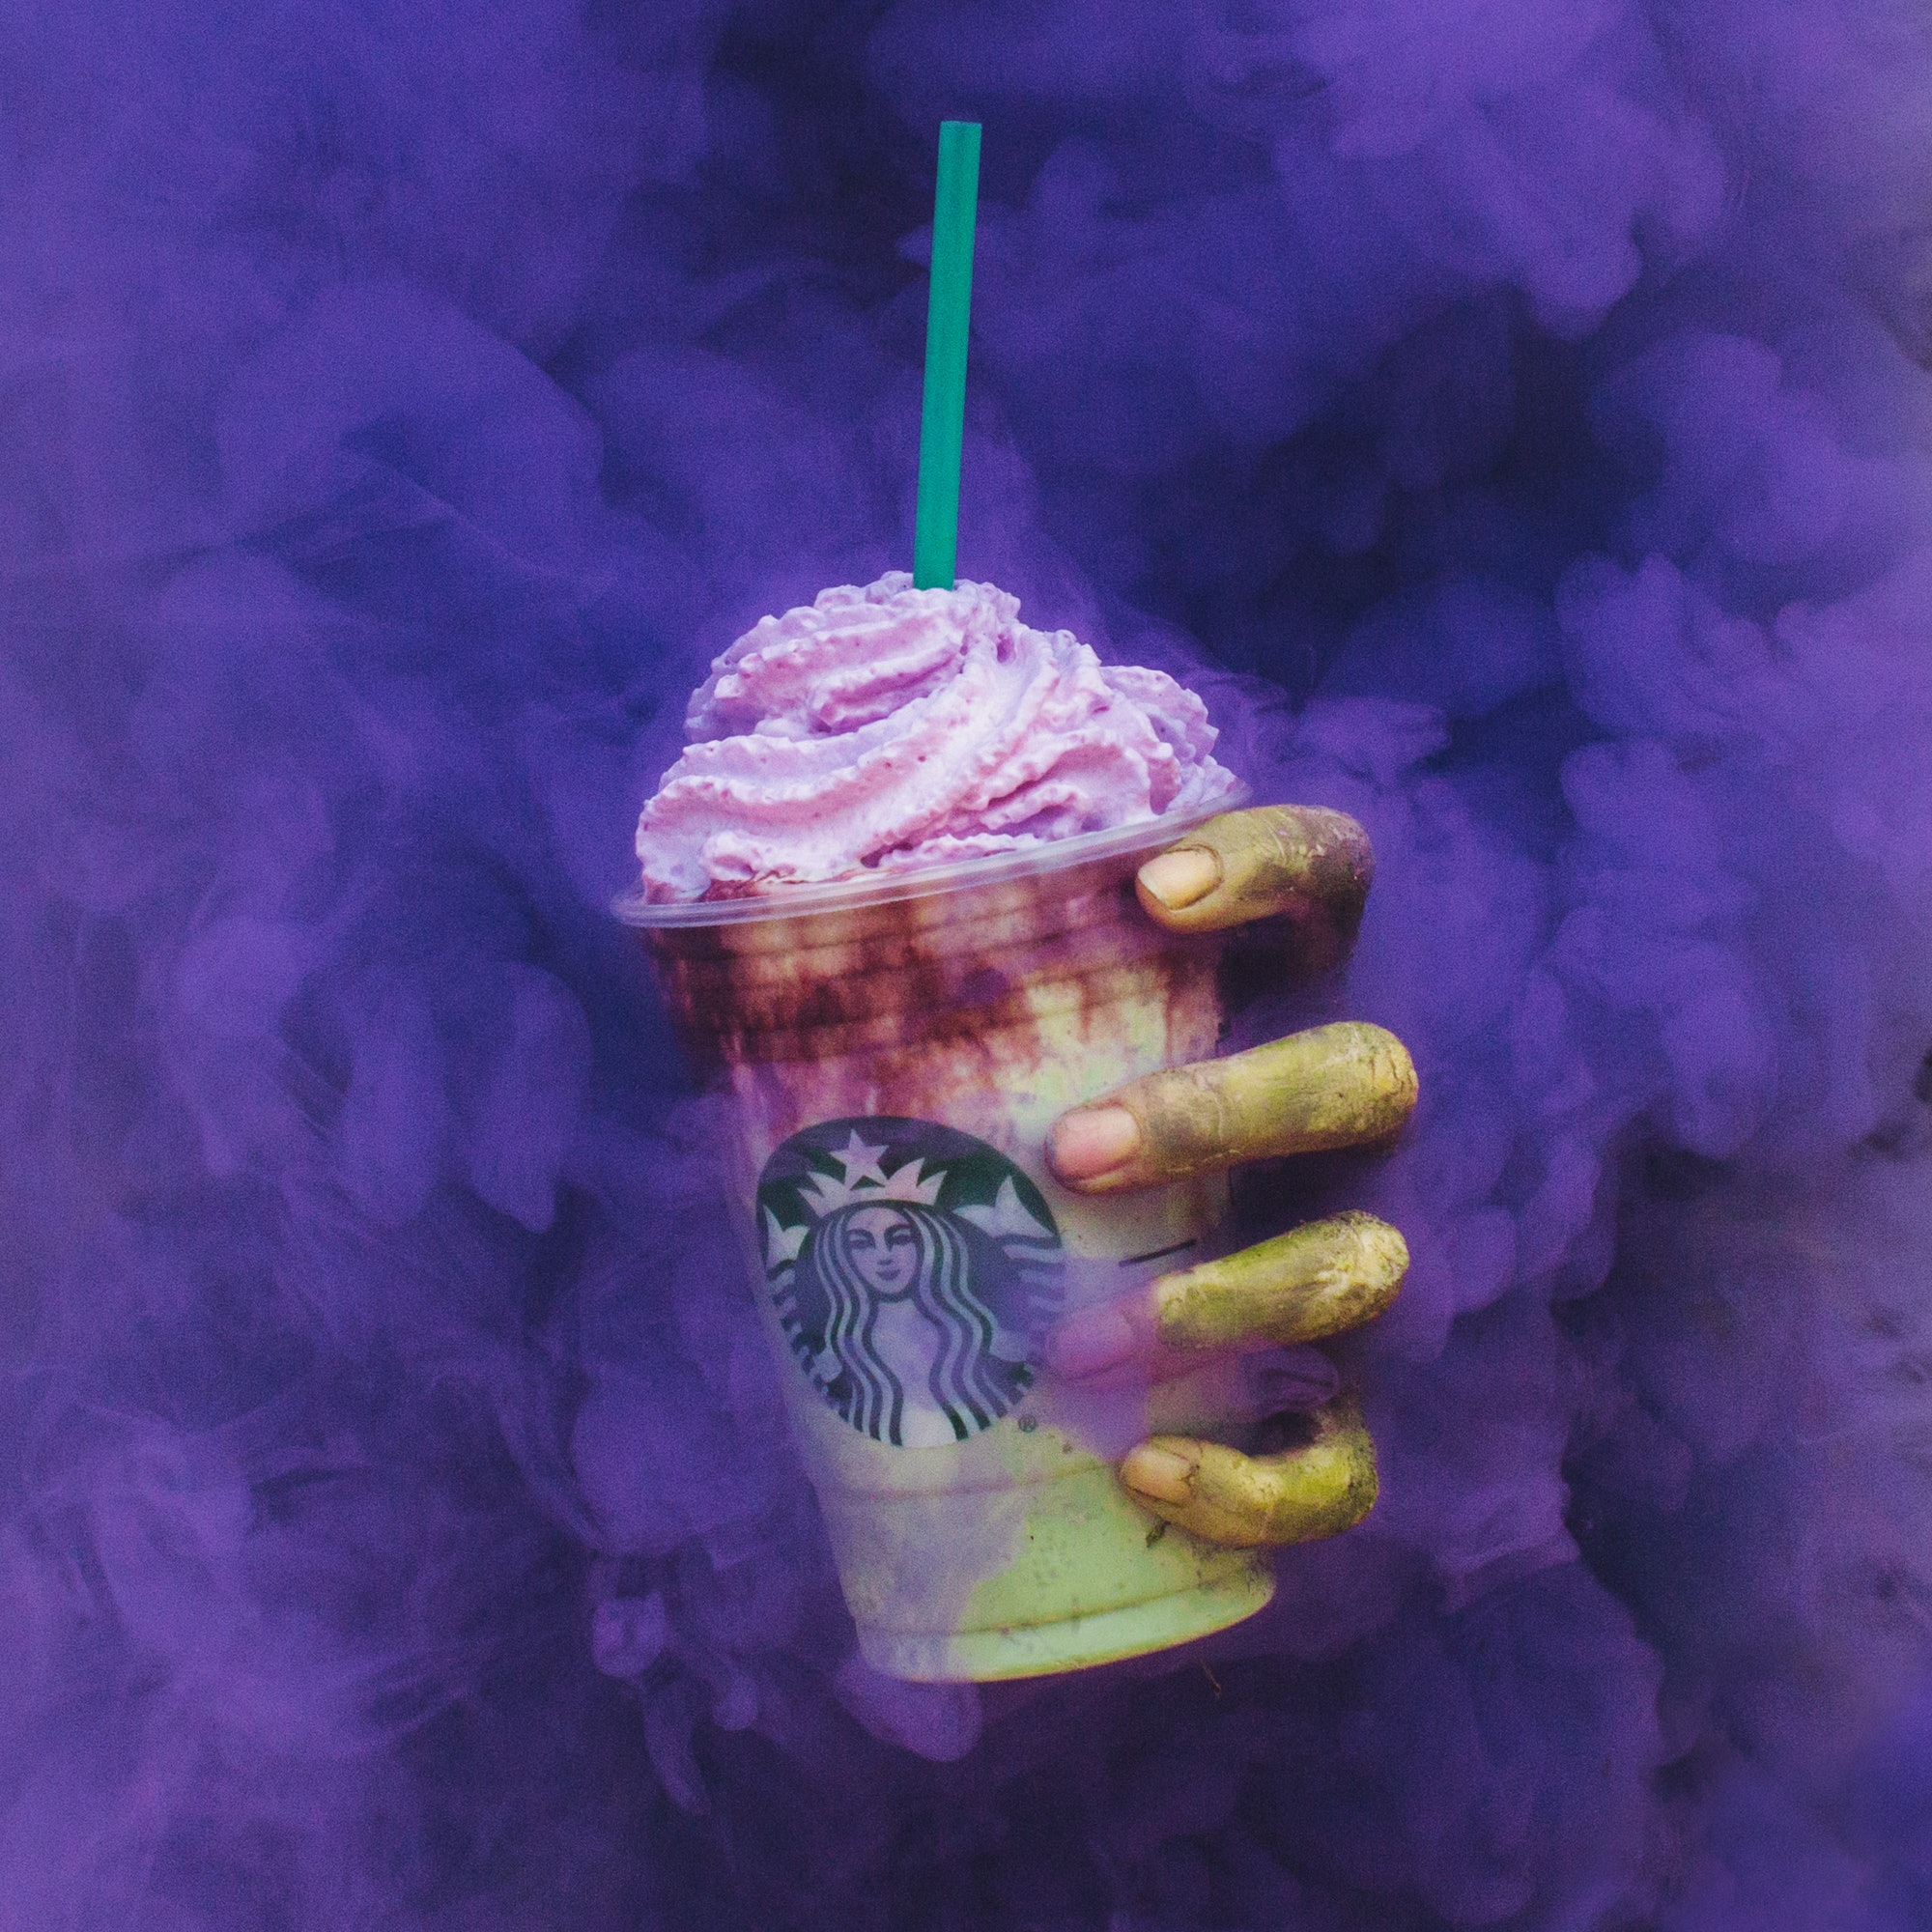 Starbucks Introduces The Zombie Frappuccino For Halloween